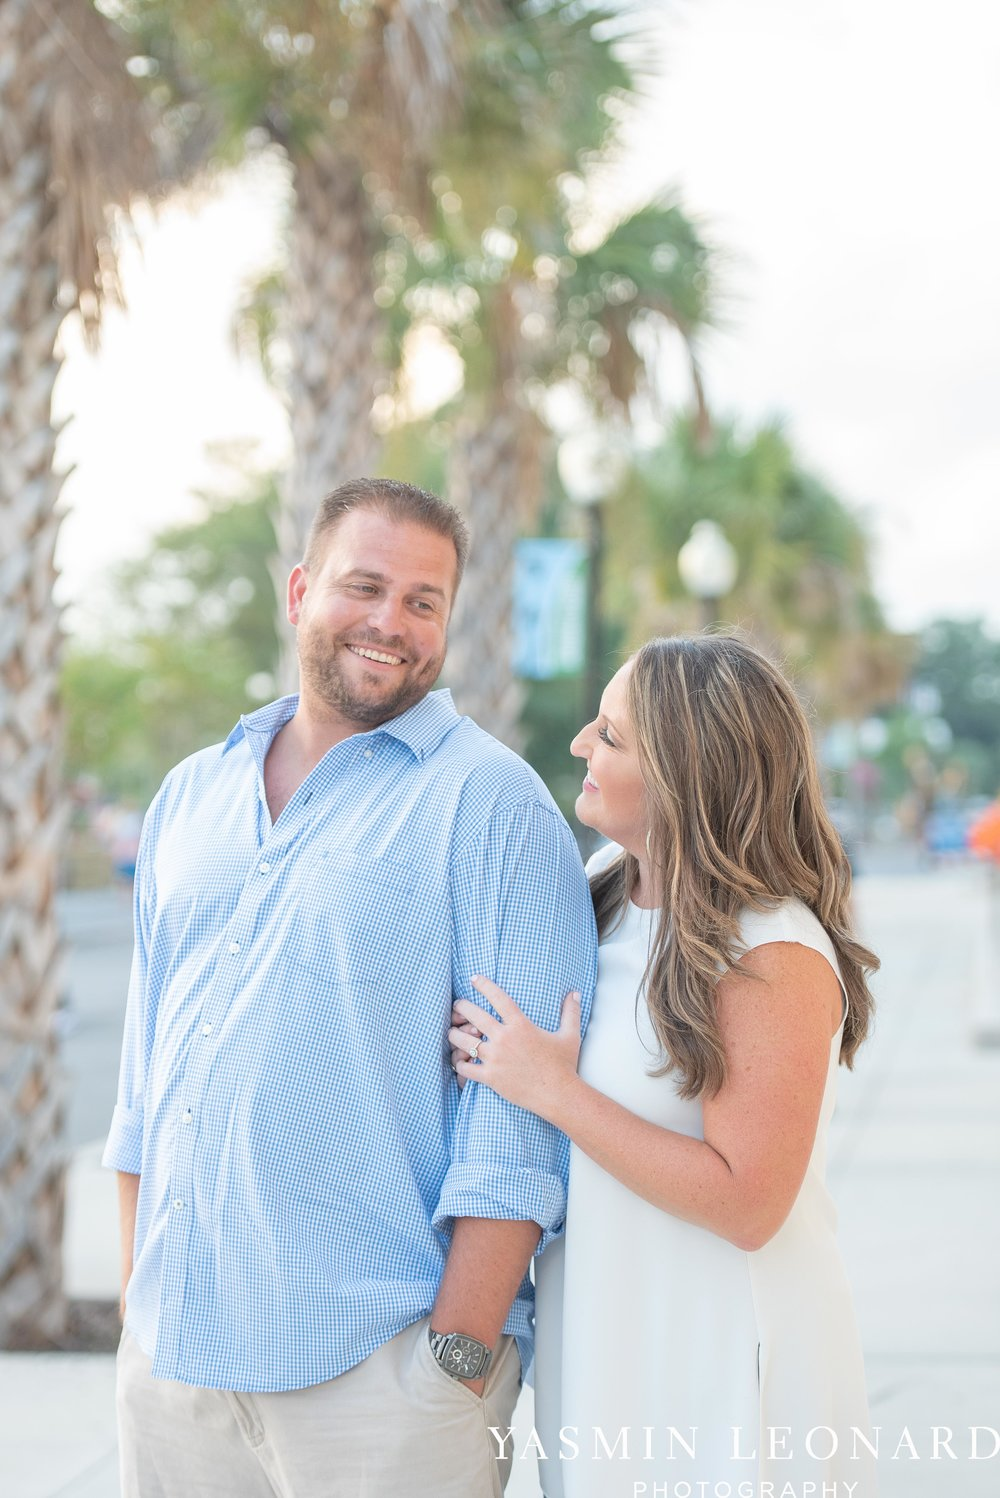 Wrightsville Beach Engagement Session - Wilmington Engagement Session - Downtown Wilmington Engagement Session - NC Weddings - Wilmington NC - Yasmin Leonard Photography-5.jpg